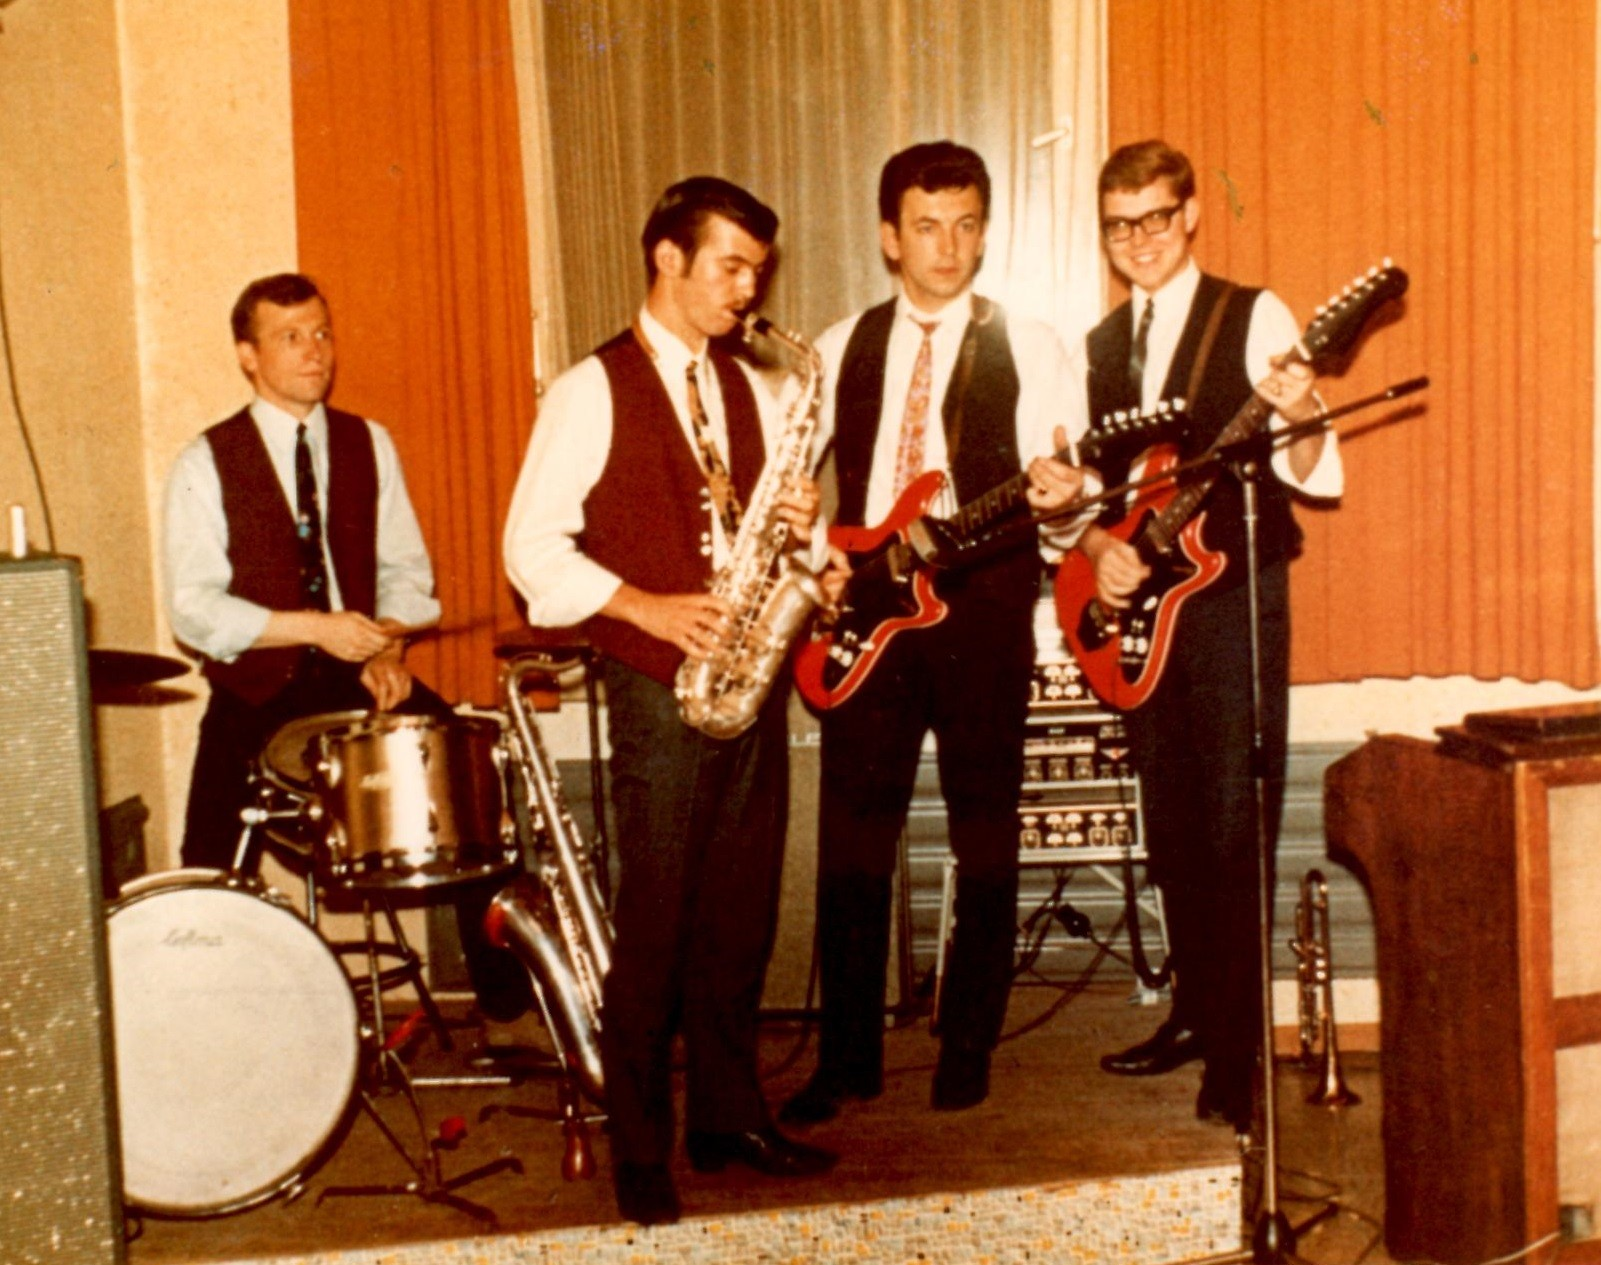 The Rhythmen Band  - Cafe Weinsteige Horrheim - 1965